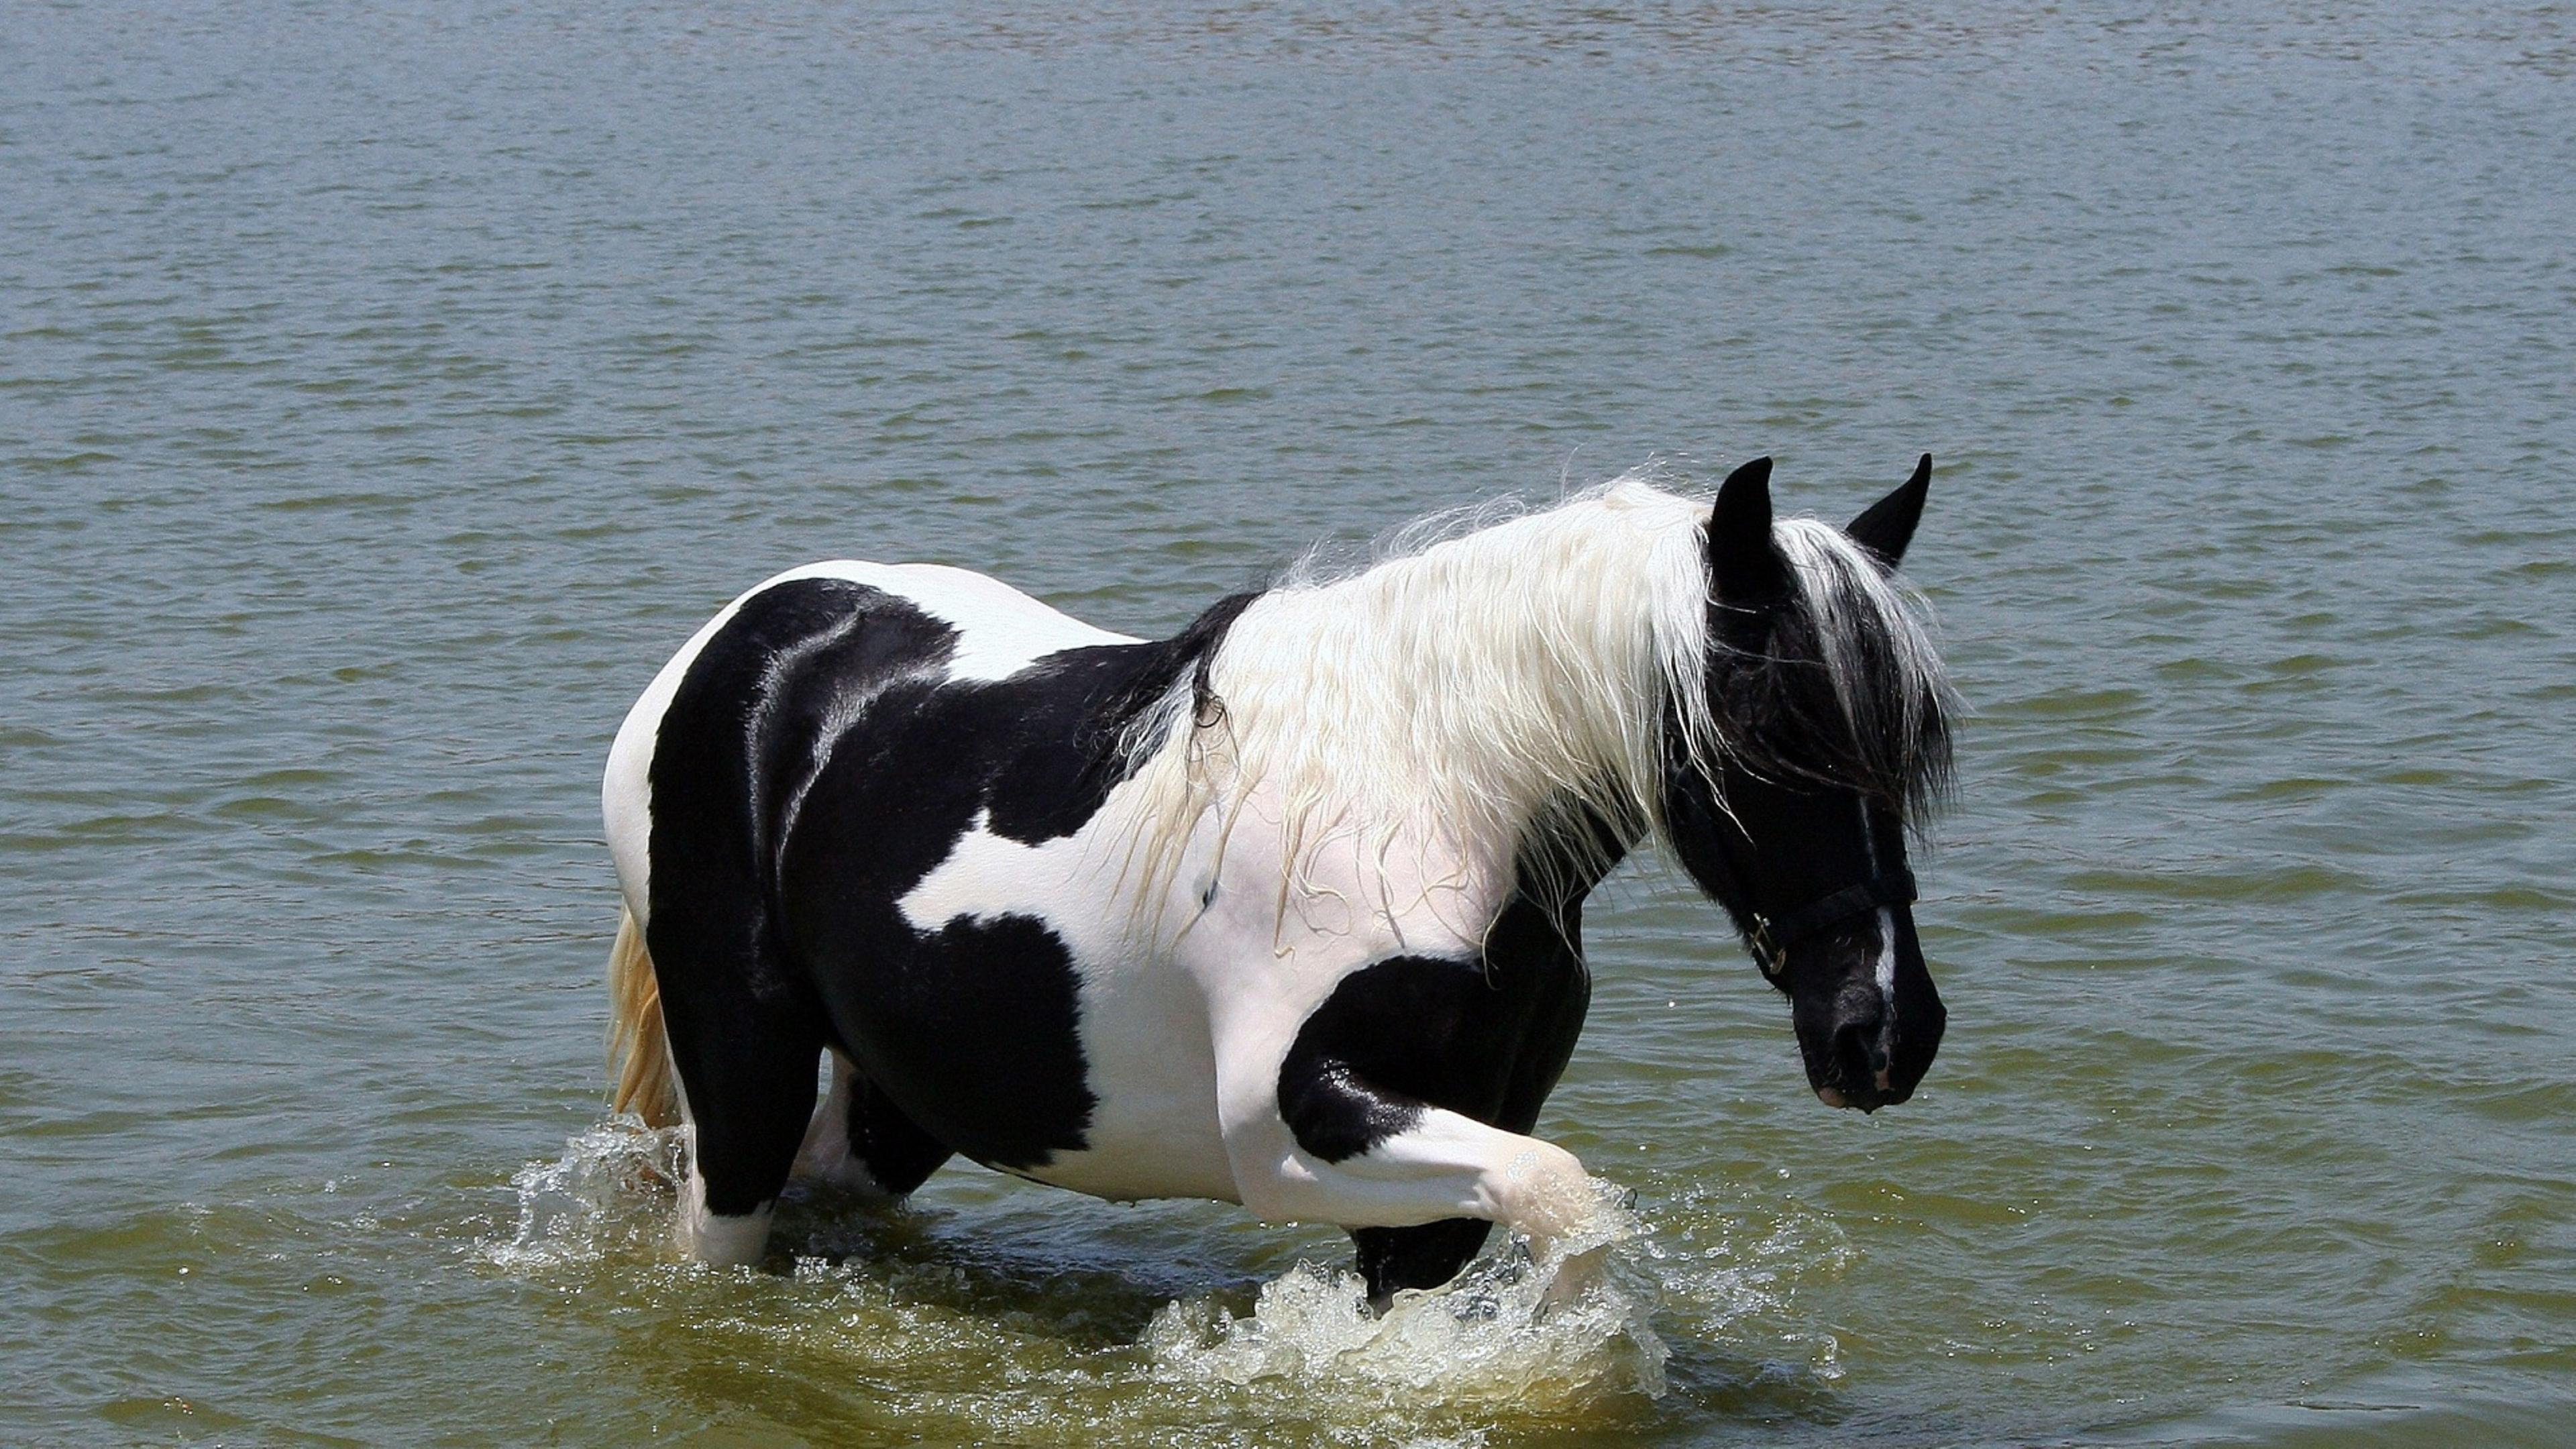 White And Black Horse Walking In The Water Wallpaper